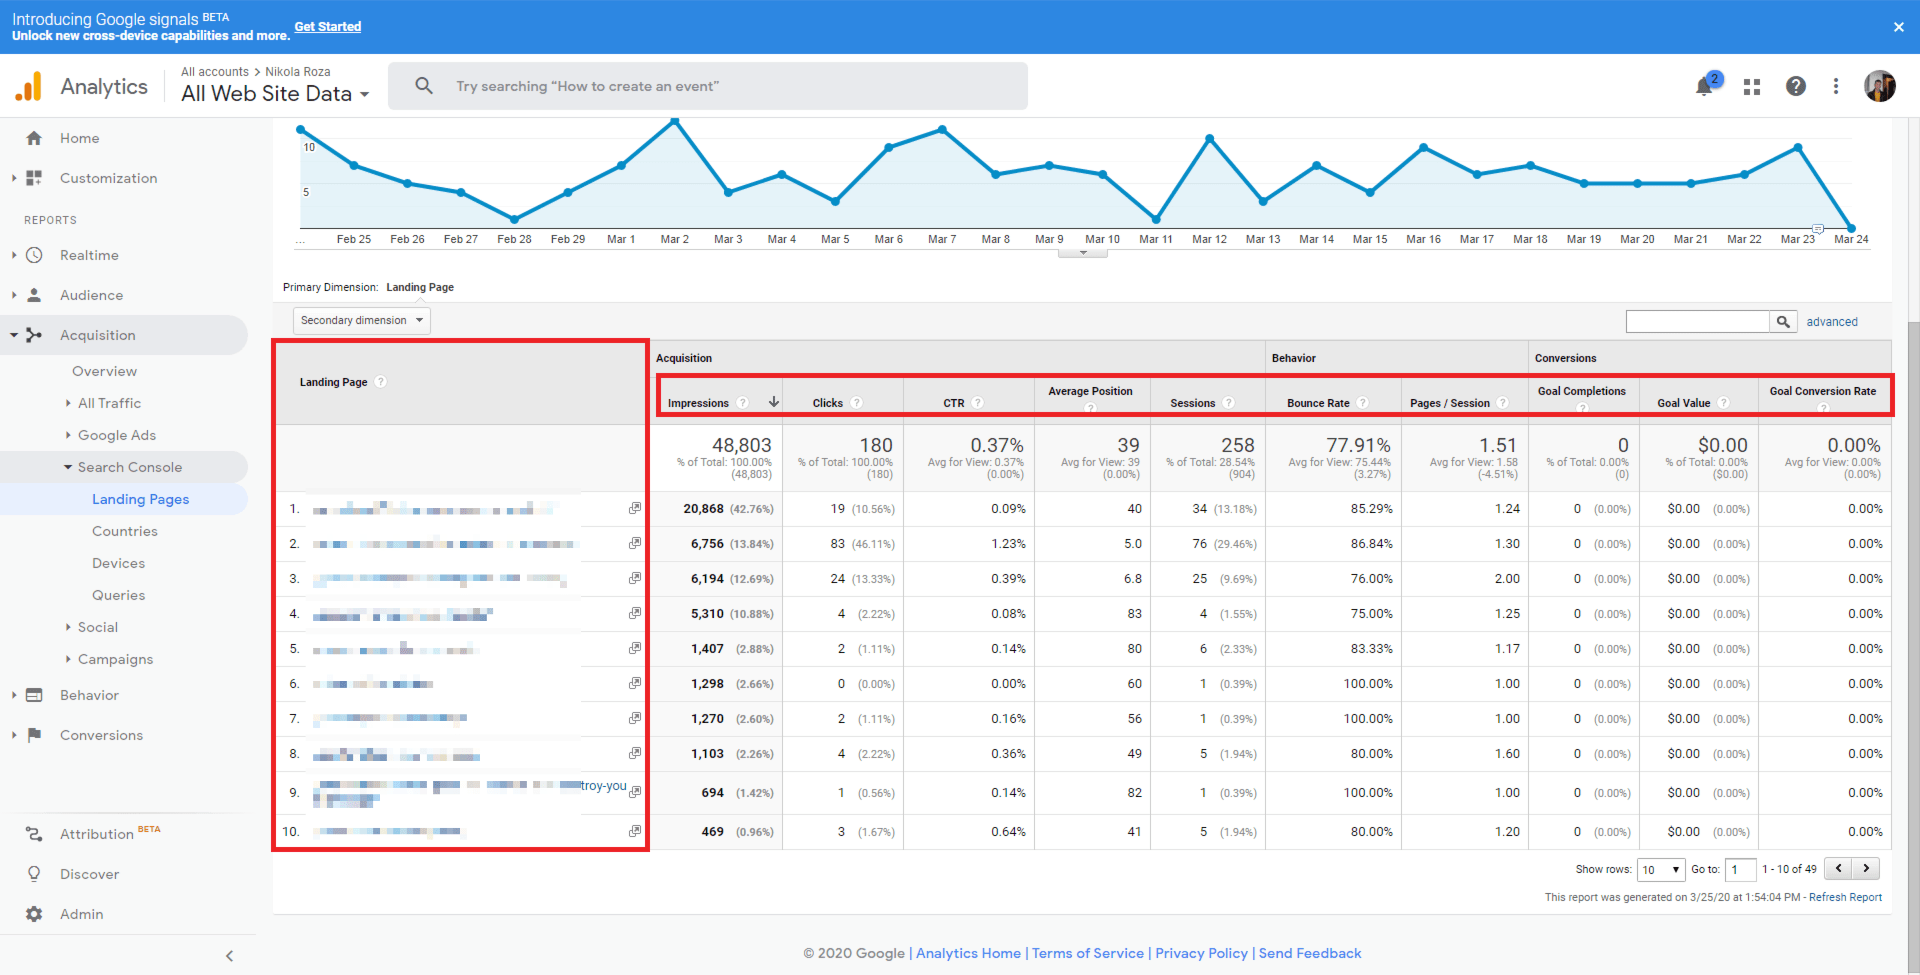 google-search-console-landing-pages-1